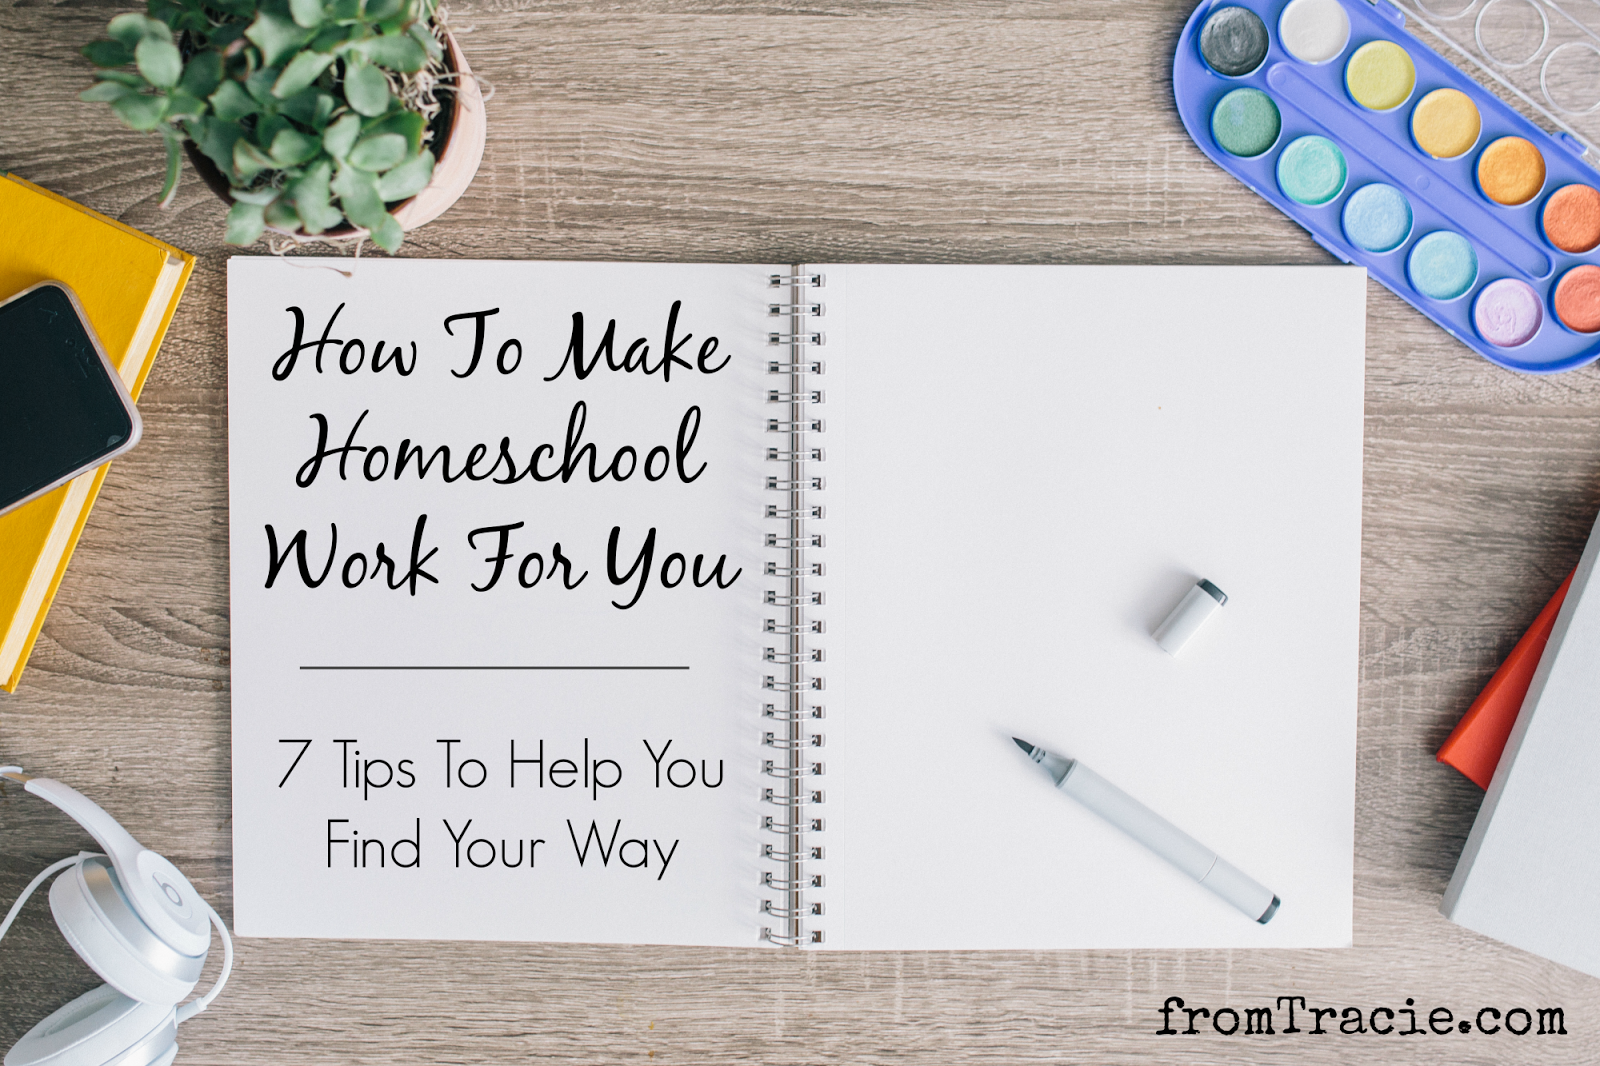 Learn how to make homeschool work for your family.